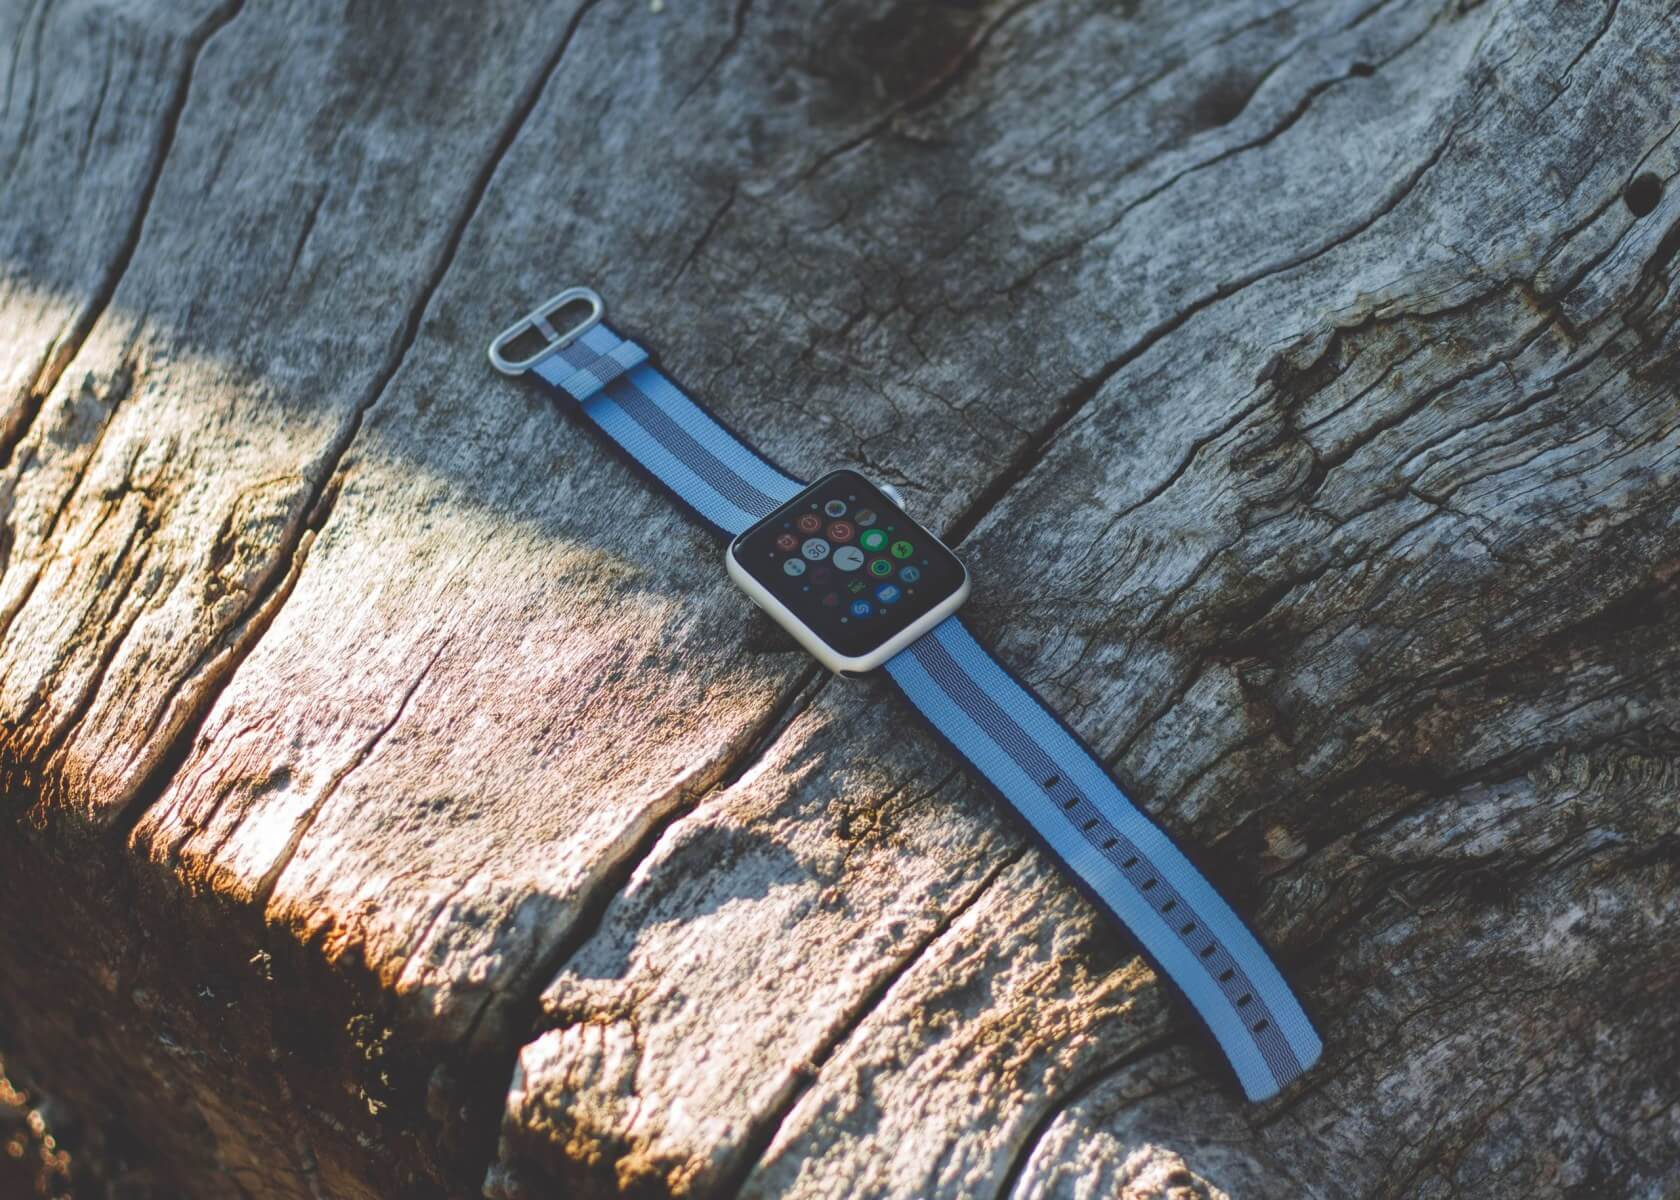 Five years later, the Apple Watch is an unyielding icon of design